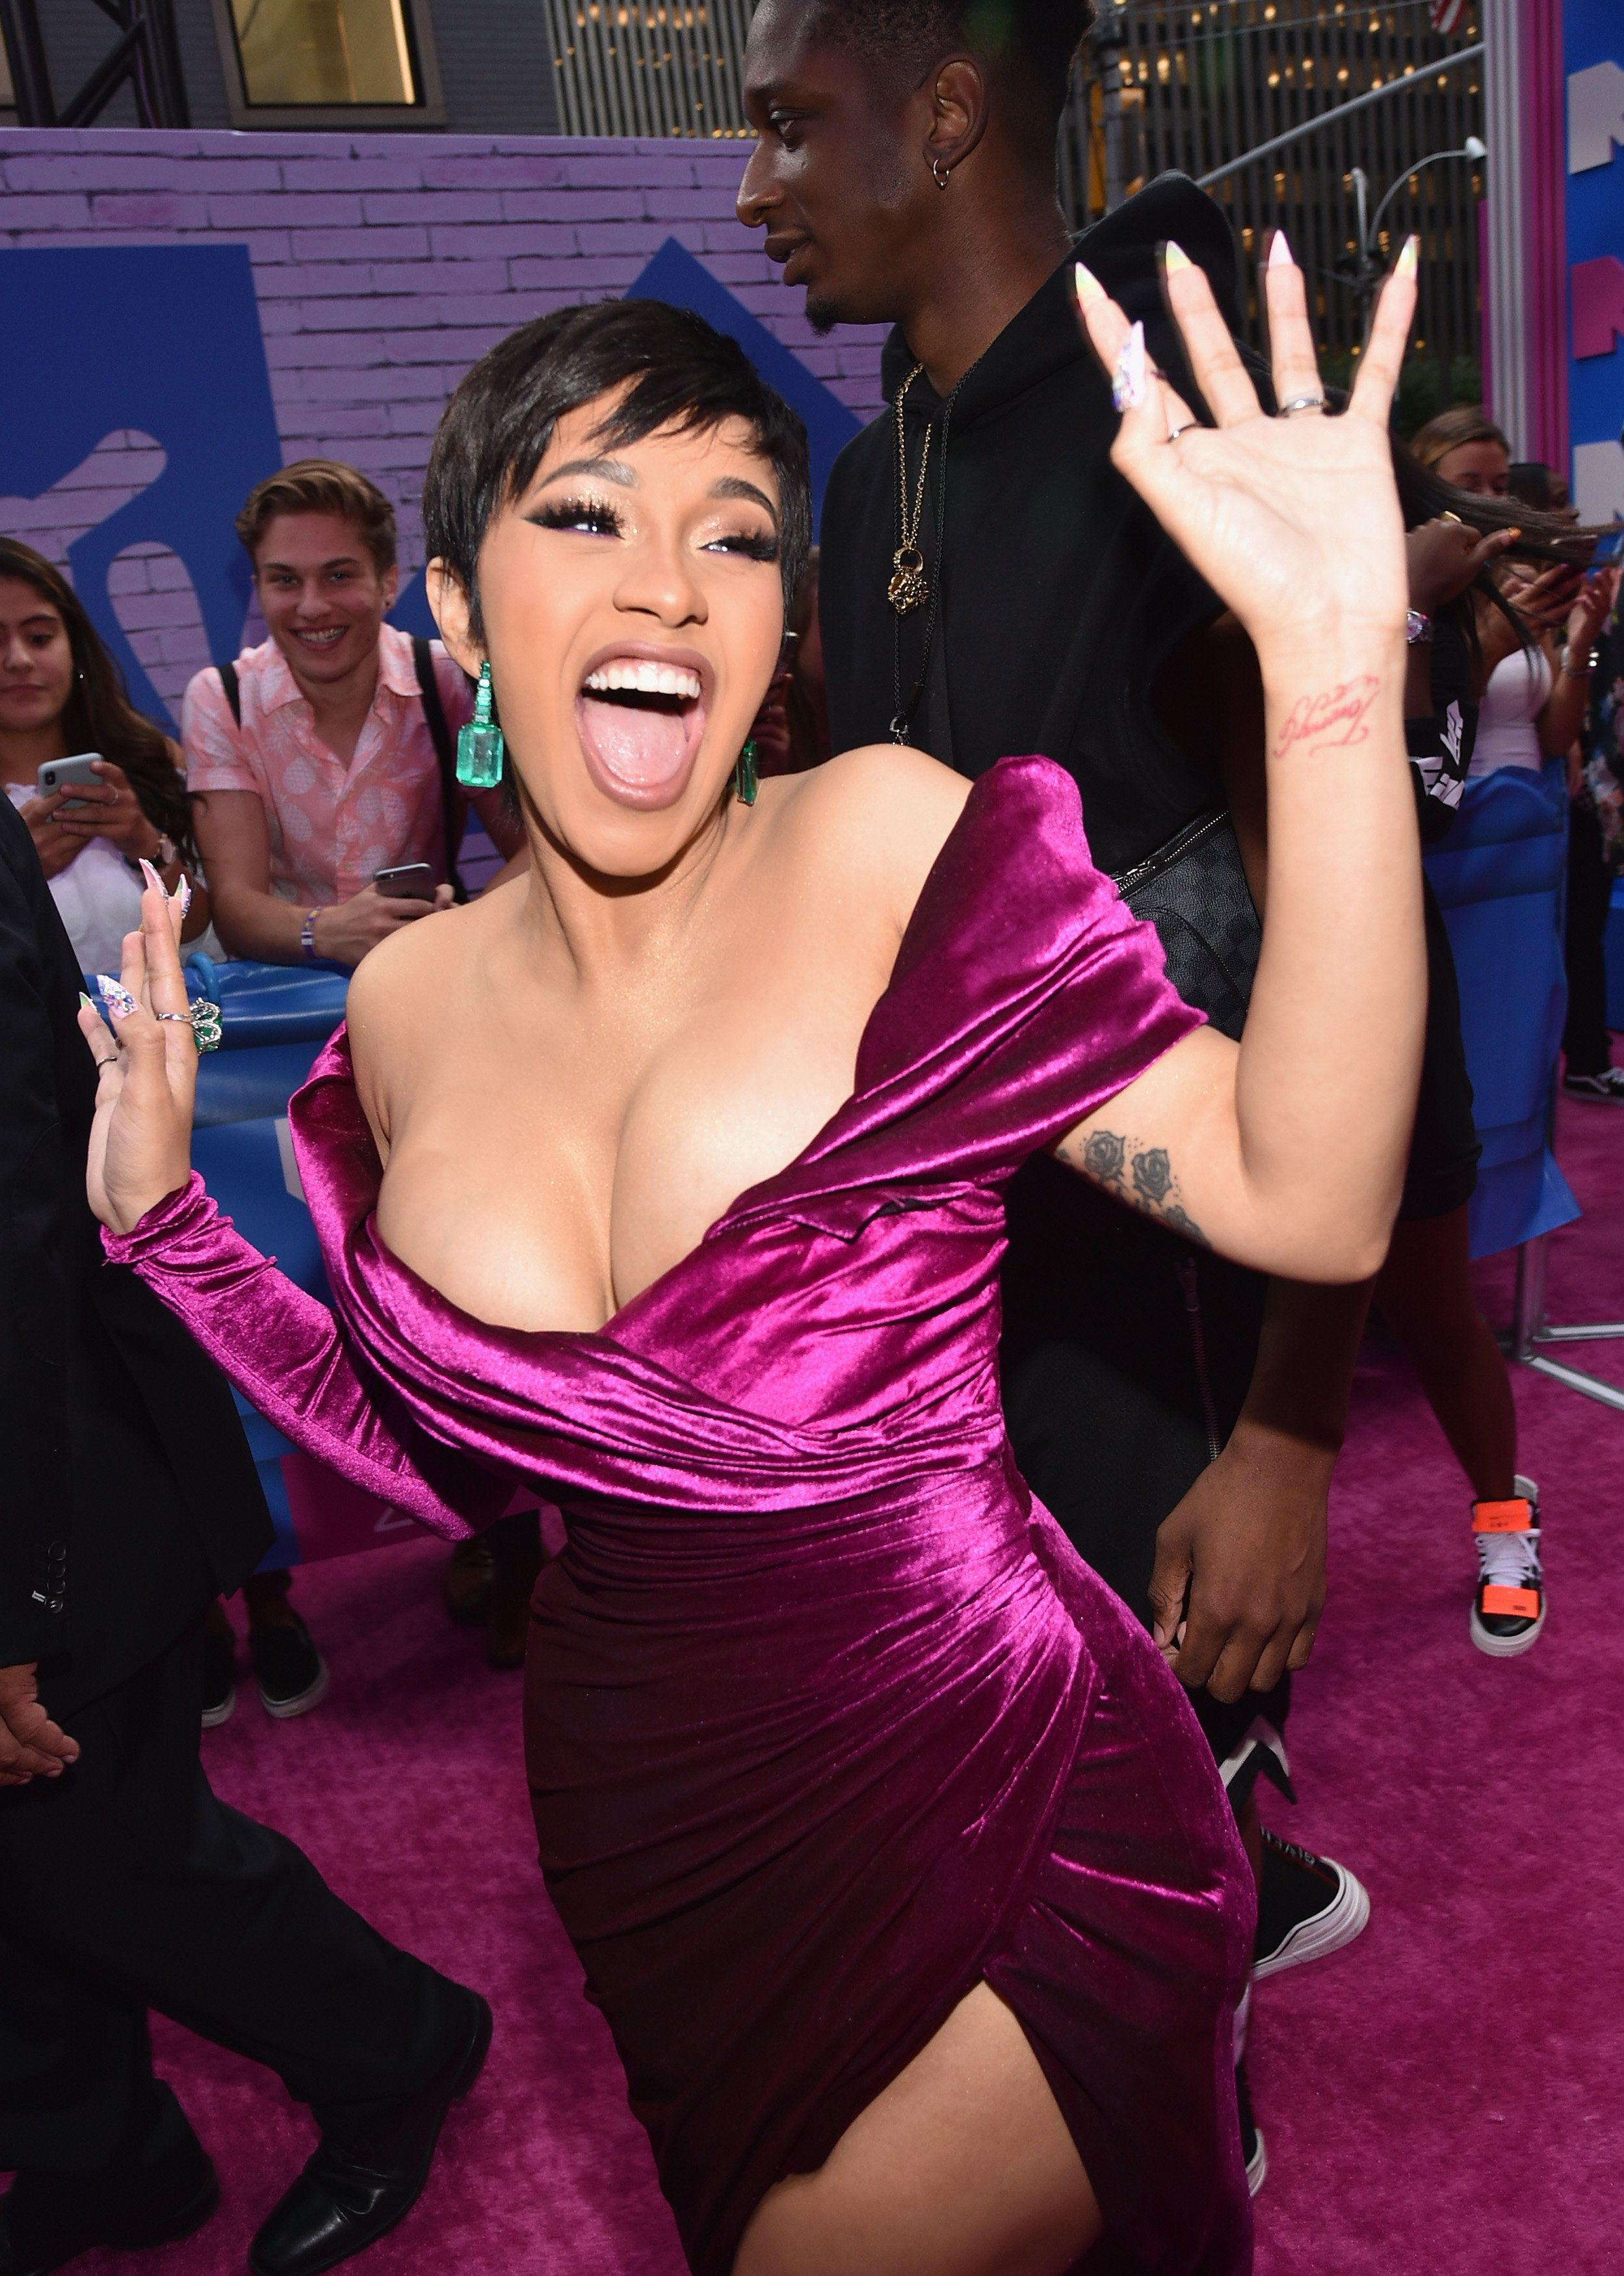 NEW YORK, NY - AUGUST 20: Cardi B attends the 2018 MTV Video Music Awards at Radio City Music Hall on August 20, 2018 in New York City.  (Photo by John Shearer/Getty Images for MTV)